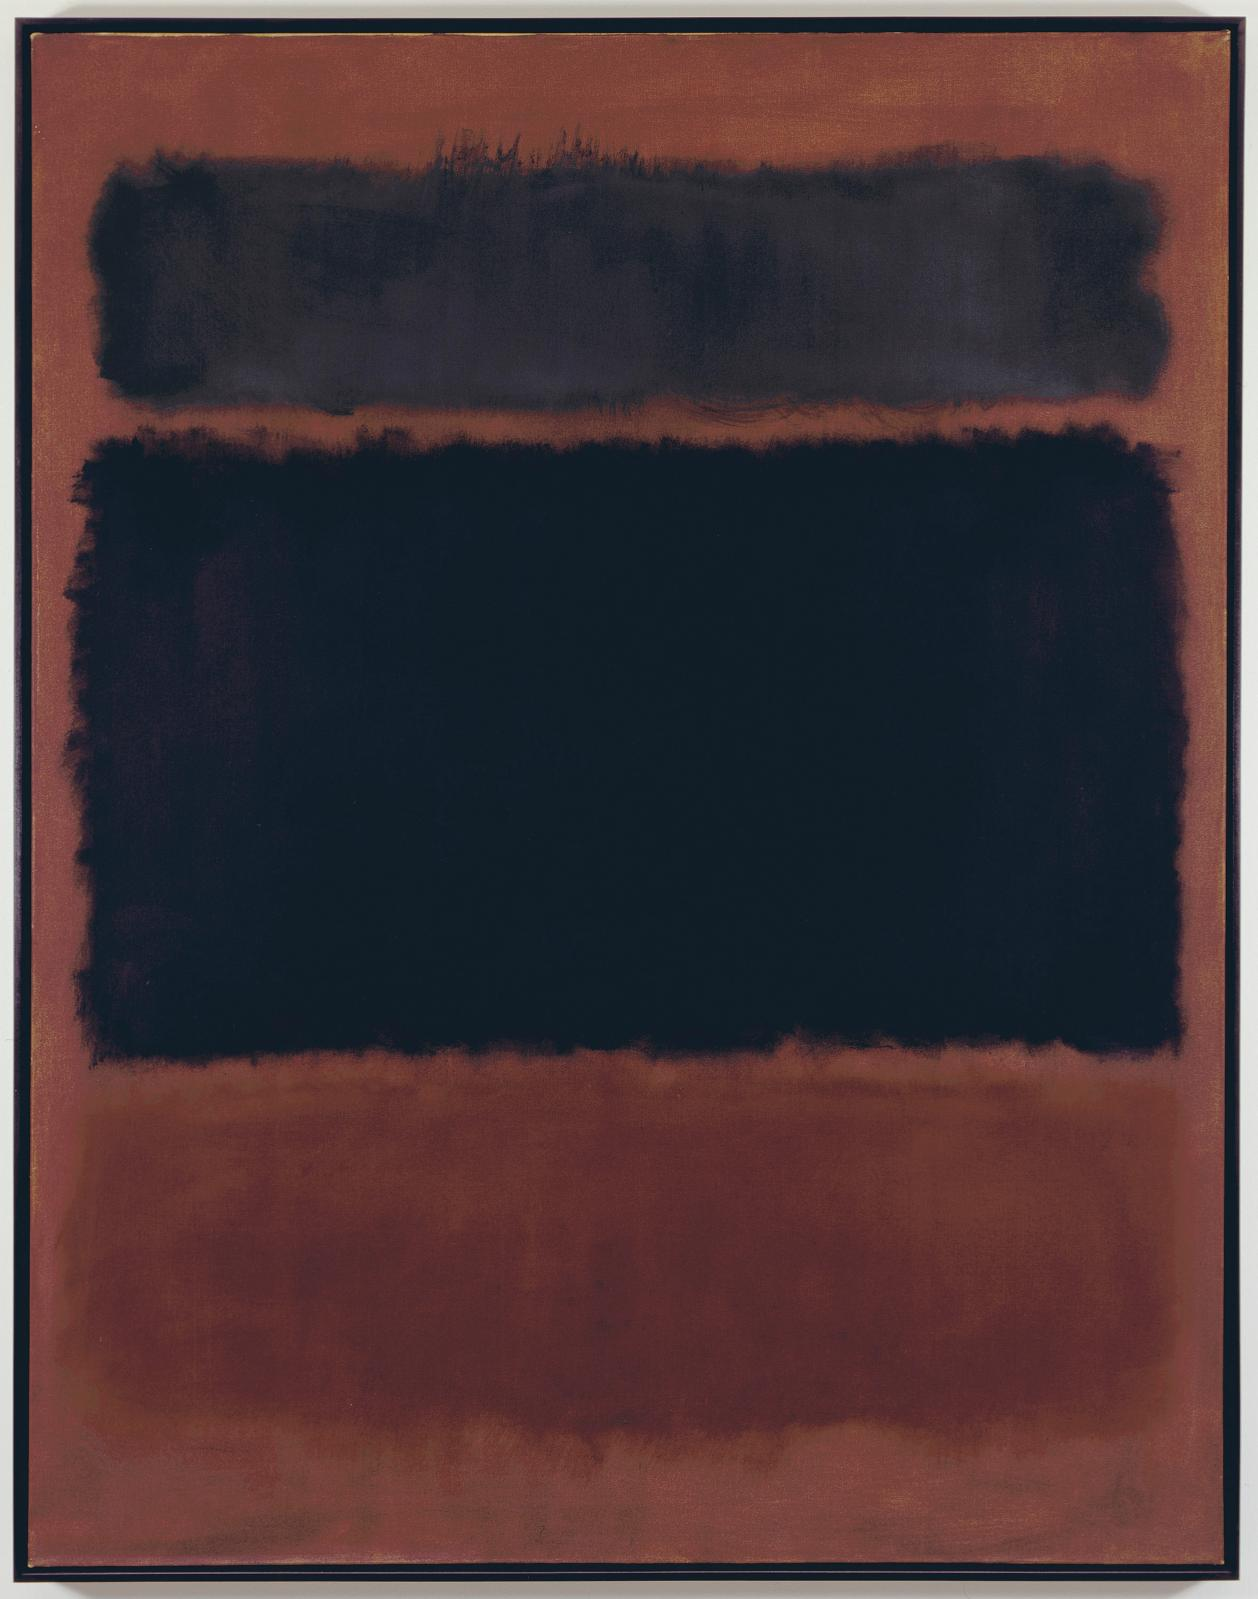 Mark Rothko (1903-1970), Black in Deep Red, 1957, huile sur toile, (176,2 cm x 136,5 cm).© 1998 KATE ROTHKO PRIZEL & CHRISTOPHER ROTHKO -